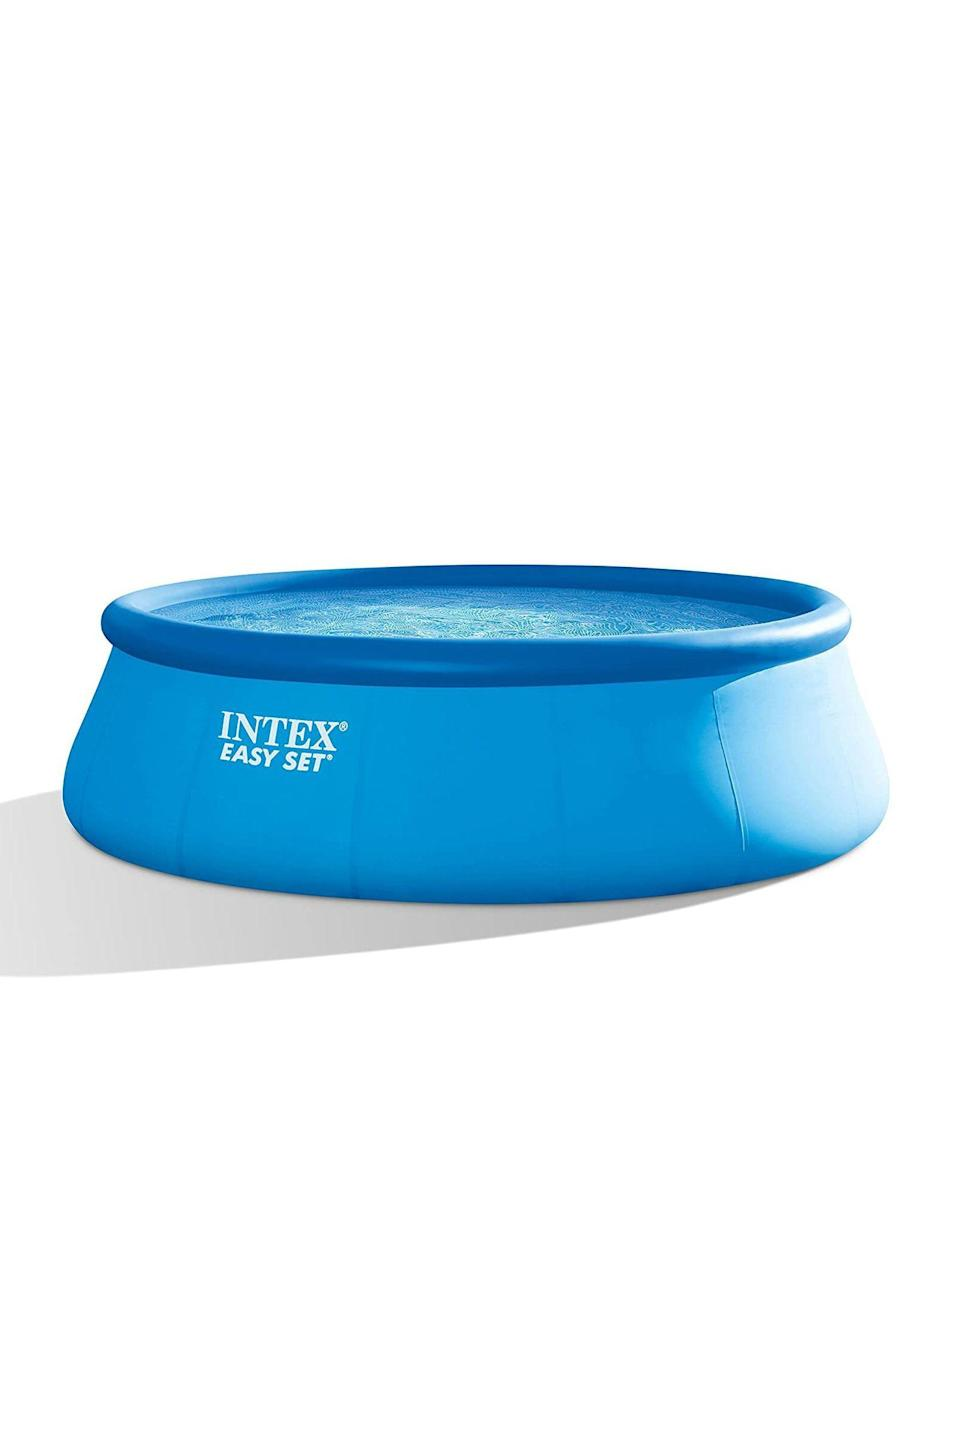 """<p><strong>Intex</strong></p><p>homedepot.com</p><p><strong>$271.76</strong></p><p><a href=""""https://go.redirectingat.com?id=74968X1596630&url=https%3A%2F%2Fwww.homedepot.com%2Fp%2FIntex-Easy-Set-15-ft-Round-x-48-in-Deep-Inflatable-Pool-28167EH-K%2F305227060&sref=https%3A%2F%2Fwww.delish.com%2Ffood-news%2Fg33420485%2Fbest-inflatable-pools%2F"""" rel=""""nofollow noopener"""" target=""""_blank"""" data-ylk=""""slk:SHOP IT"""" class=""""link rapid-noclick-resp"""">SHOP IT</a></p><p>Intex's round deep inflatable pool is also currently sold out (gotta love quarantine summers!), but you can submit your email on the site to be alerted when more become available. At this point, you have nothing to lose—especially since it doesn't start getting cool until October.<br></p>"""